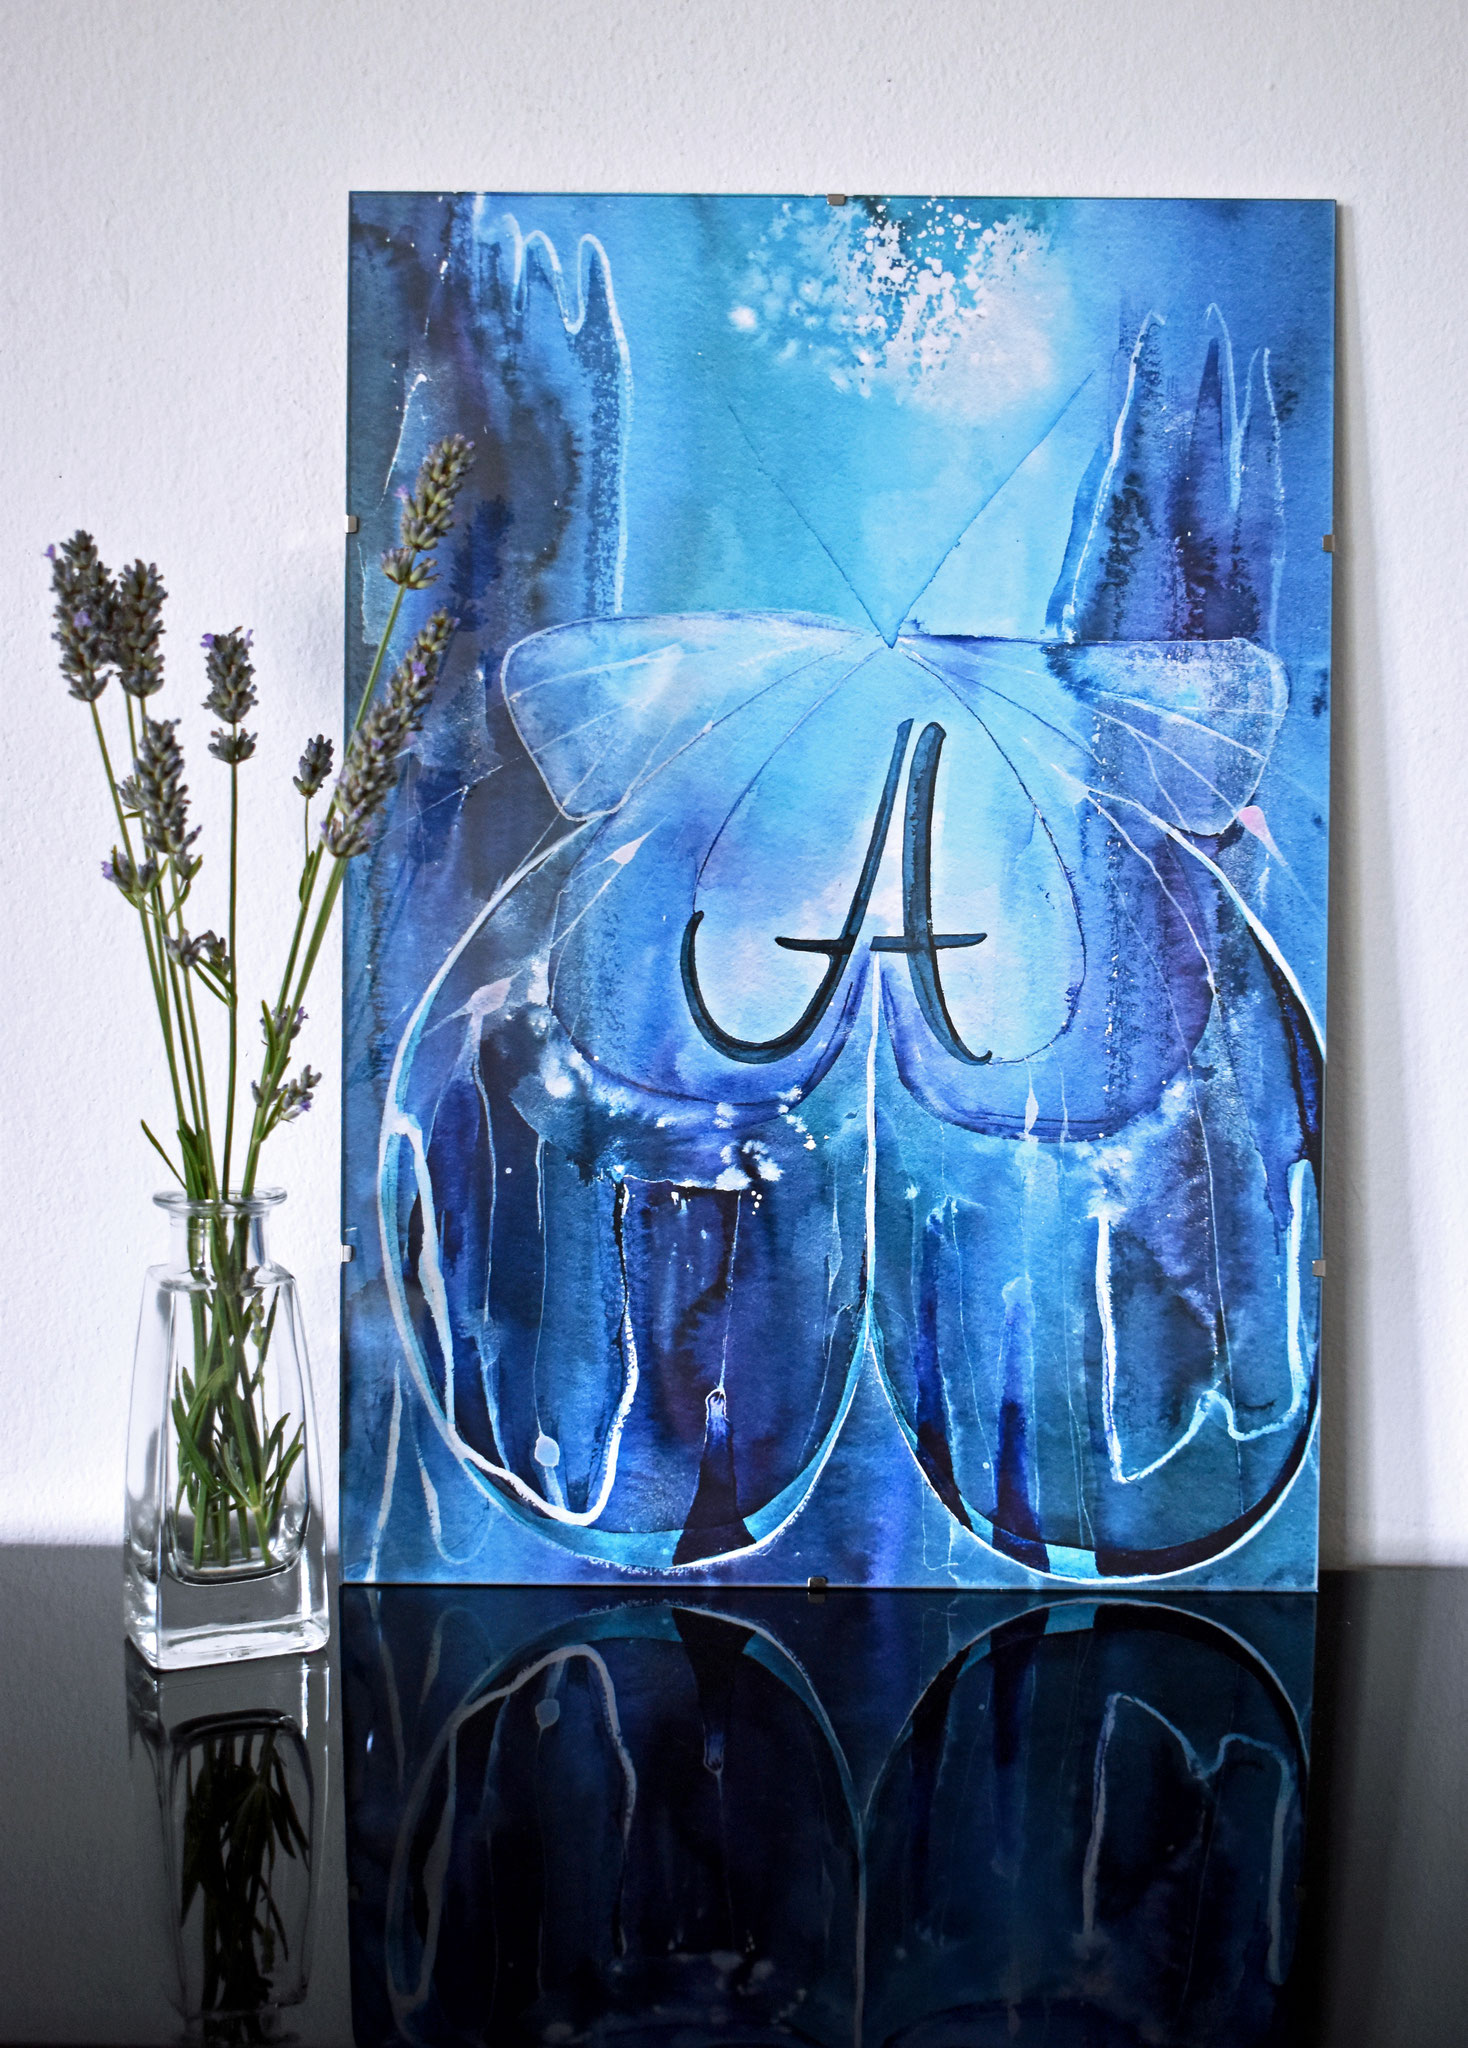 """A"" Nursery Collection Print DIN A3, € 39.-"